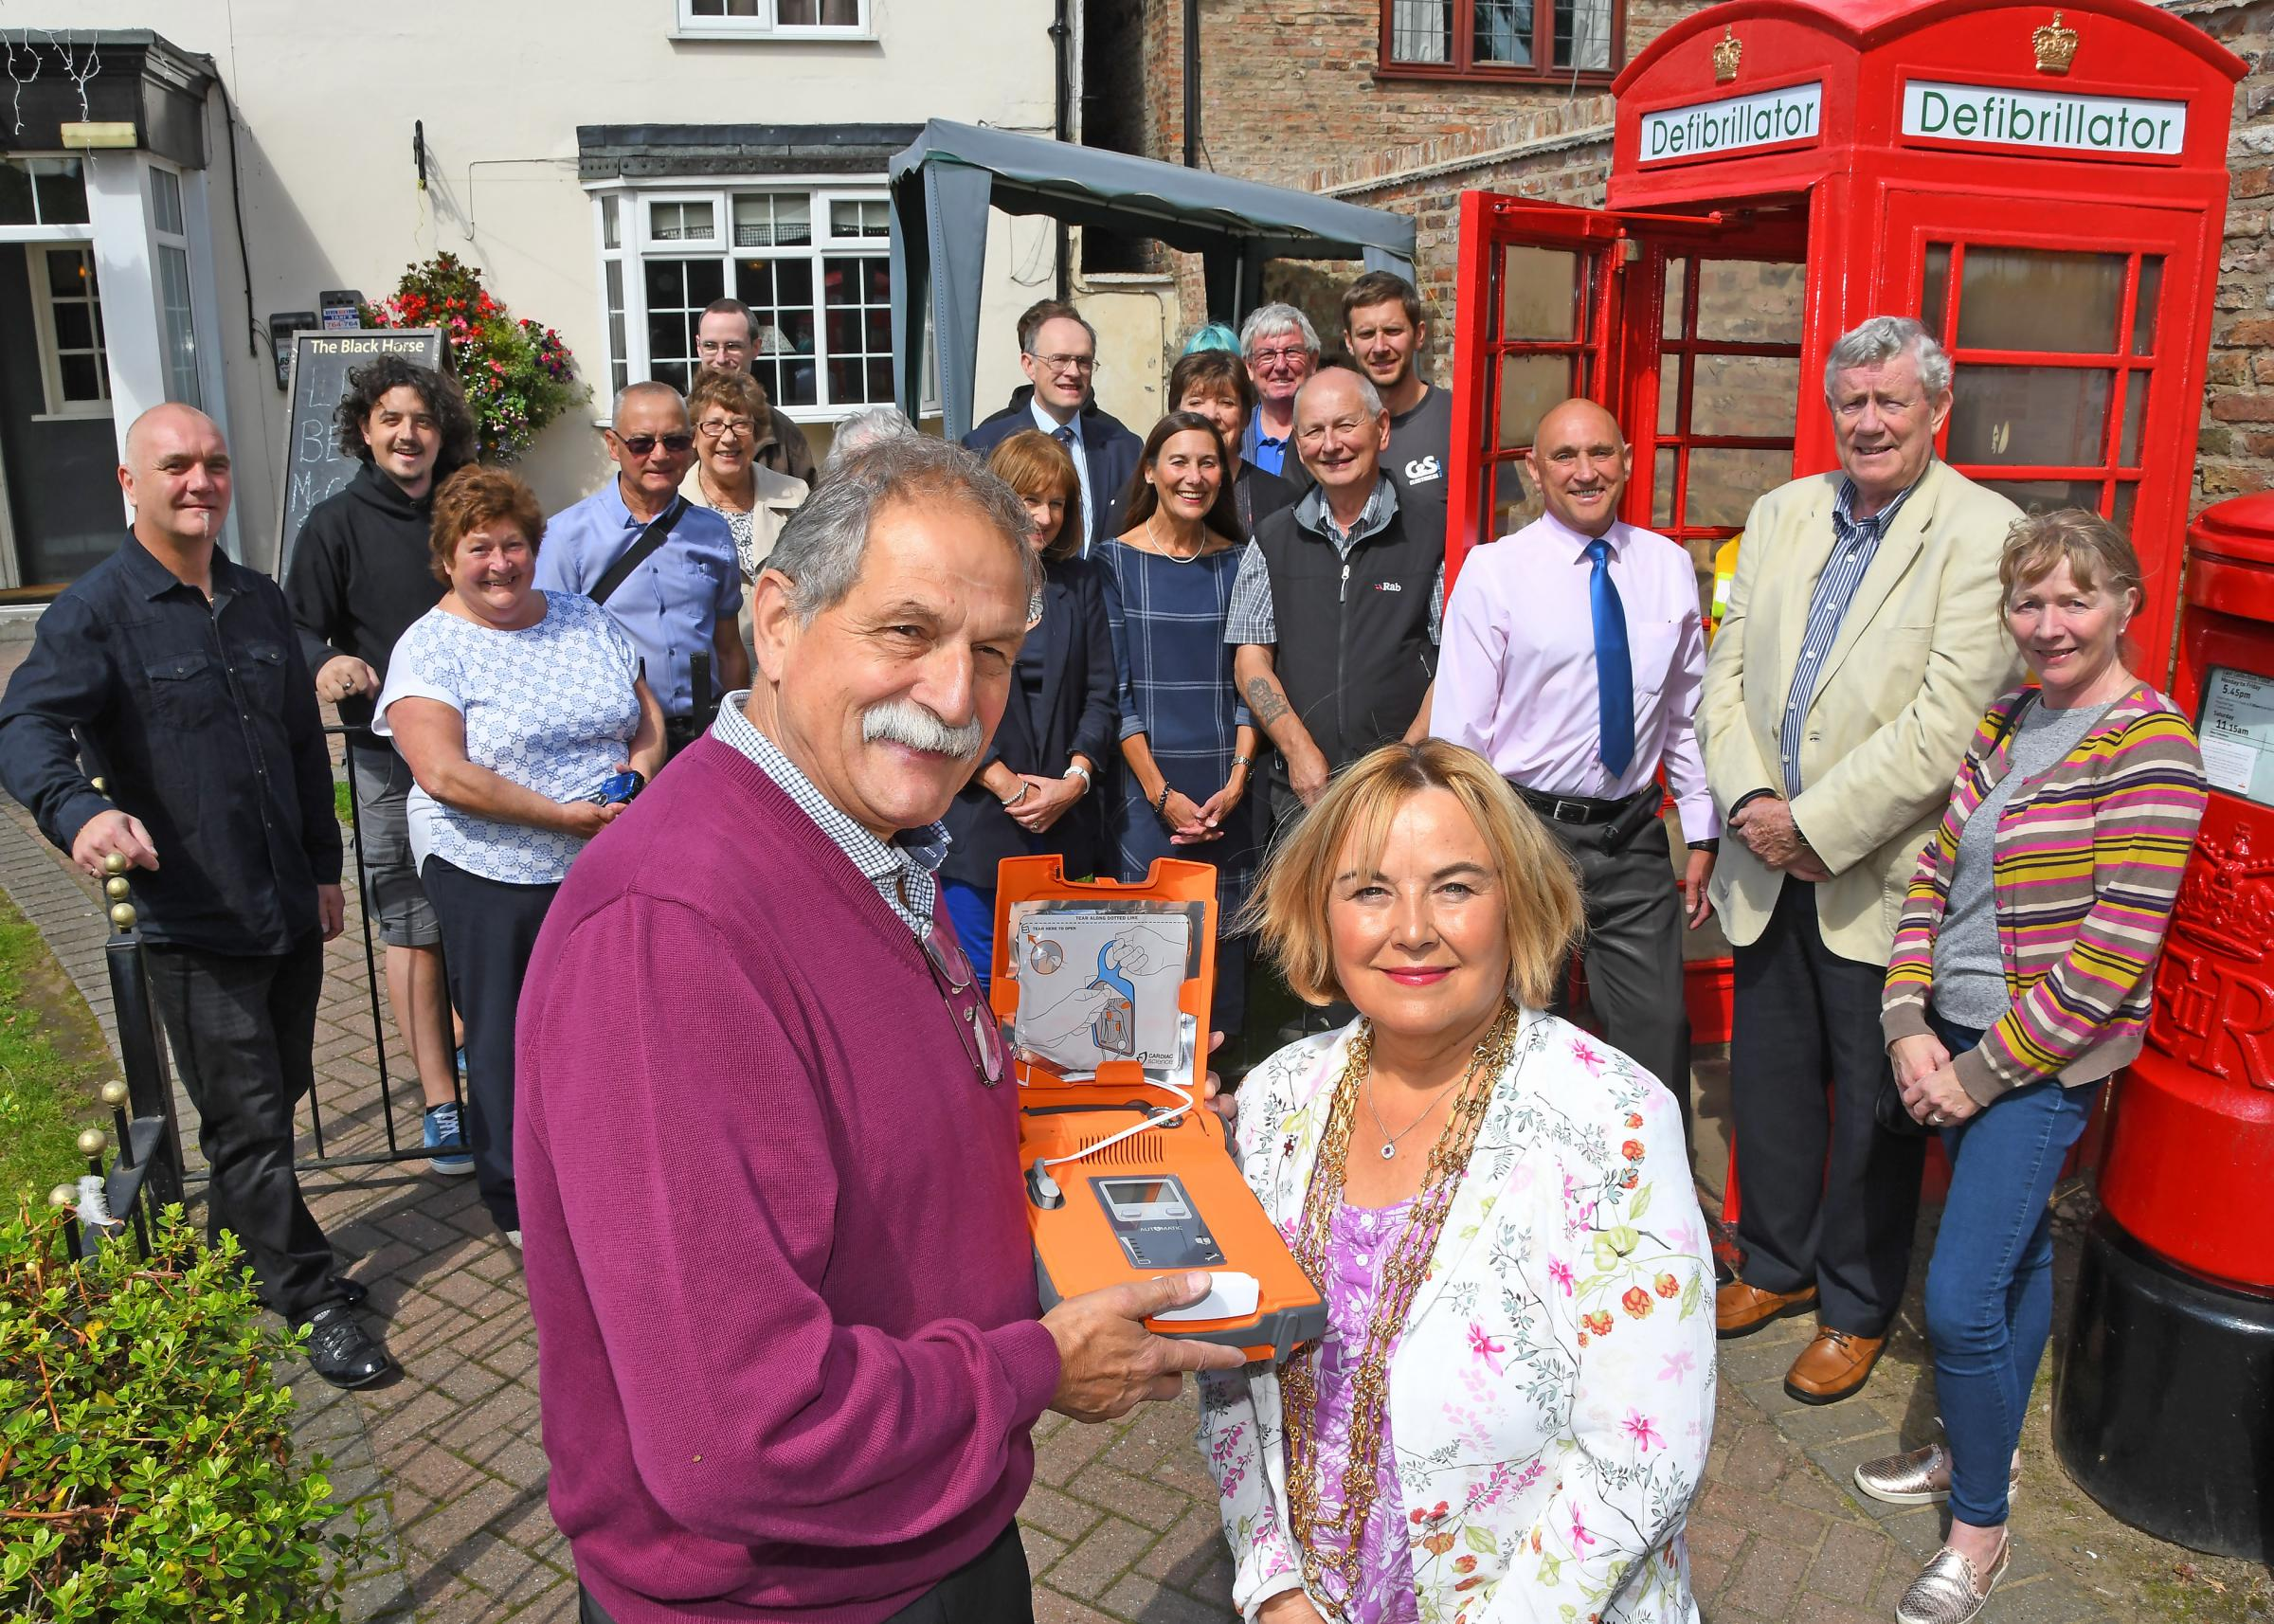 Lord Mayor of York Cllr Barbara Boyce joined David Geary Wiggington Clerk and community members with the new village defibrillator in the old telephone box outside the Blak Horse Pub. Picture David Harrison.